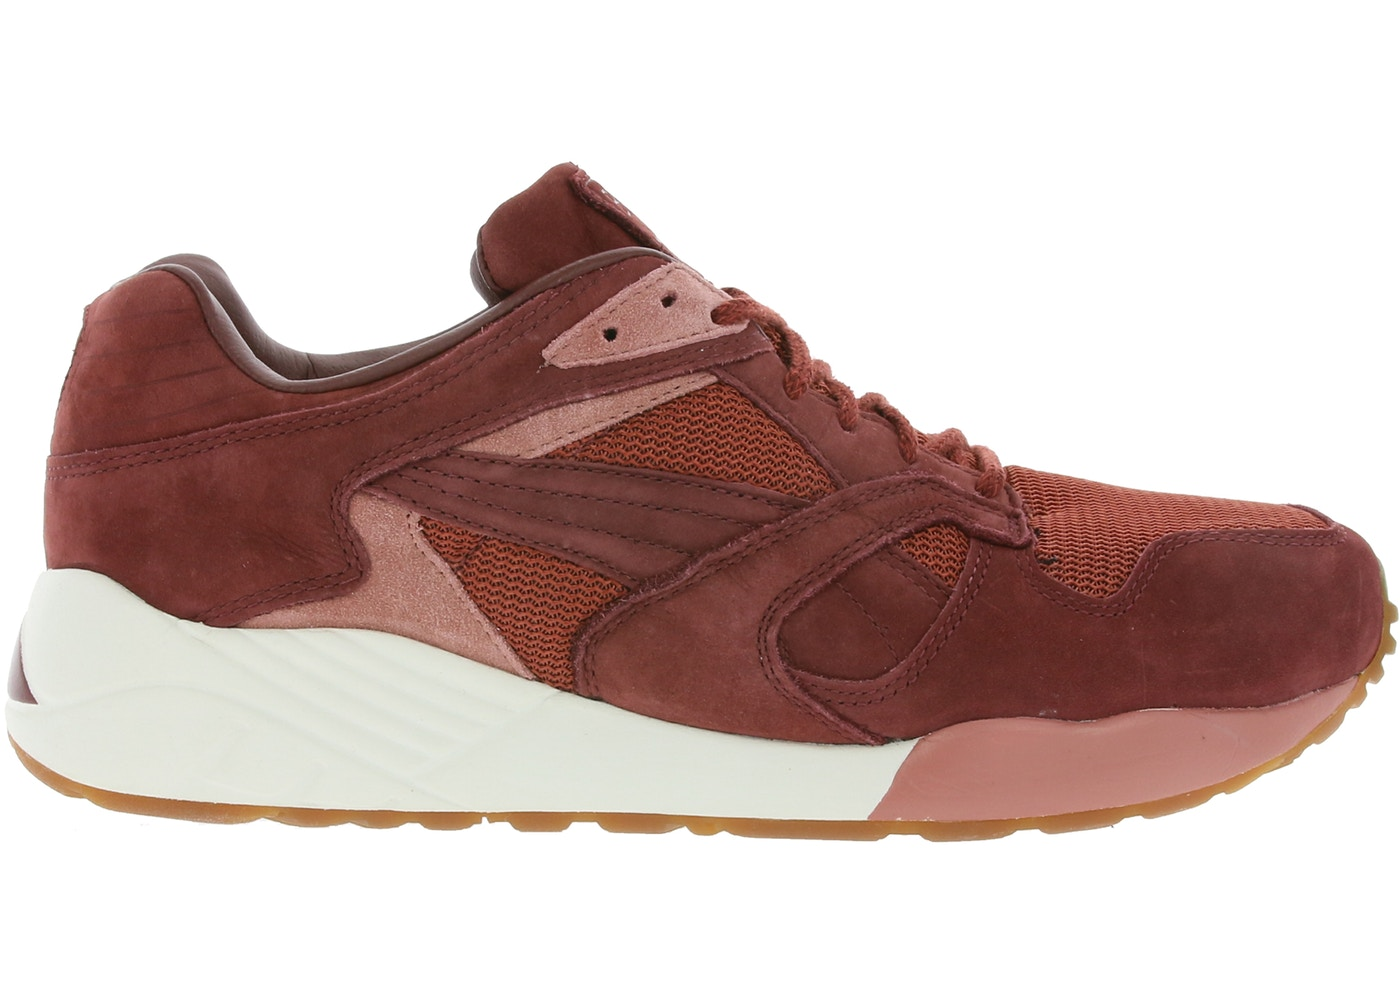 474bf607f898 Sell. or Ask. Size  13. View All Bids. Puma XS-850 BWGH Madder Brown